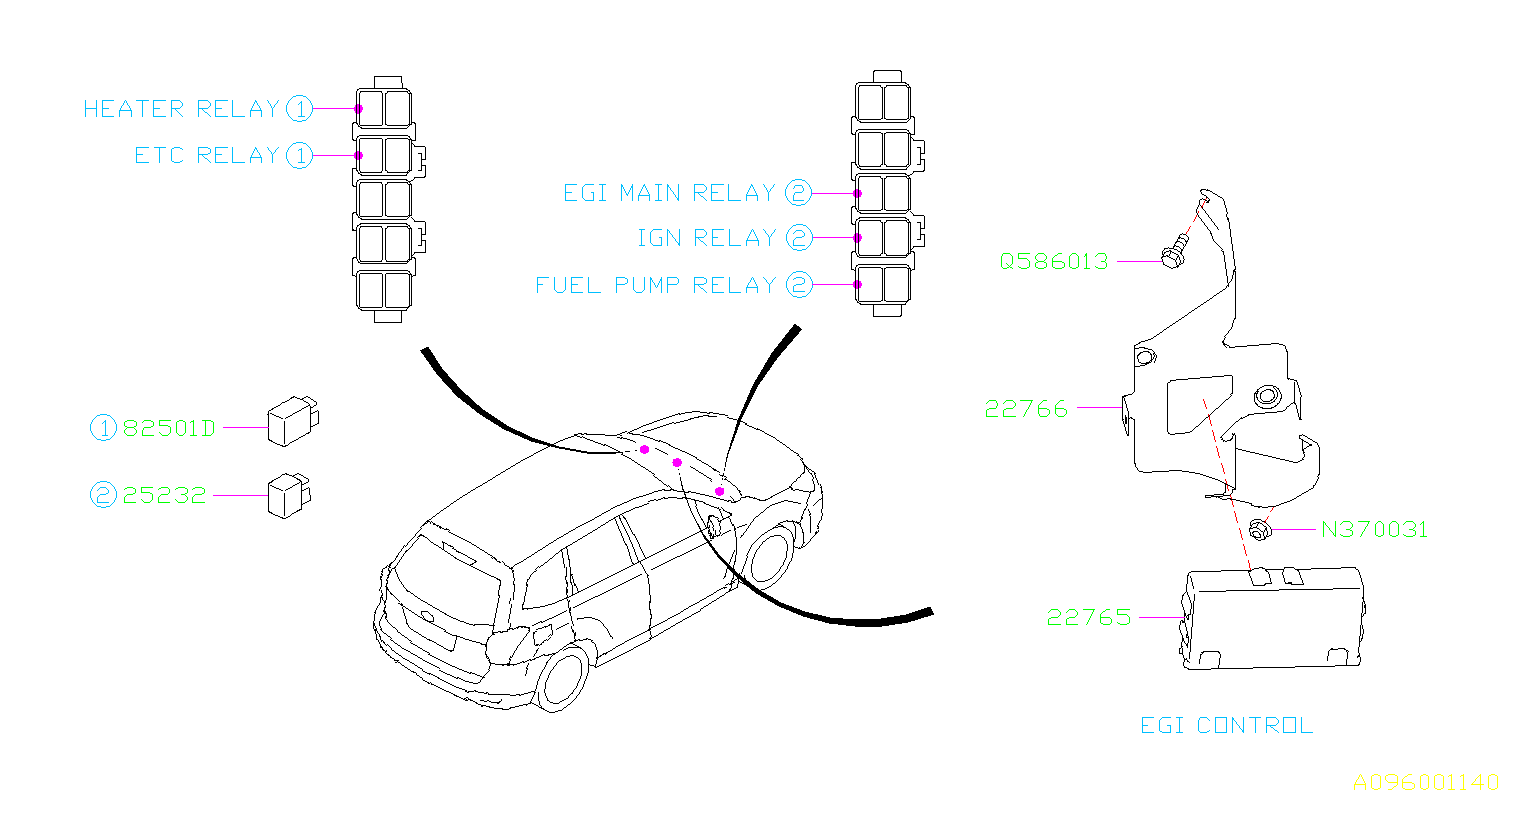 2015 Subaru Forester Relay  Electrical  Body  Control